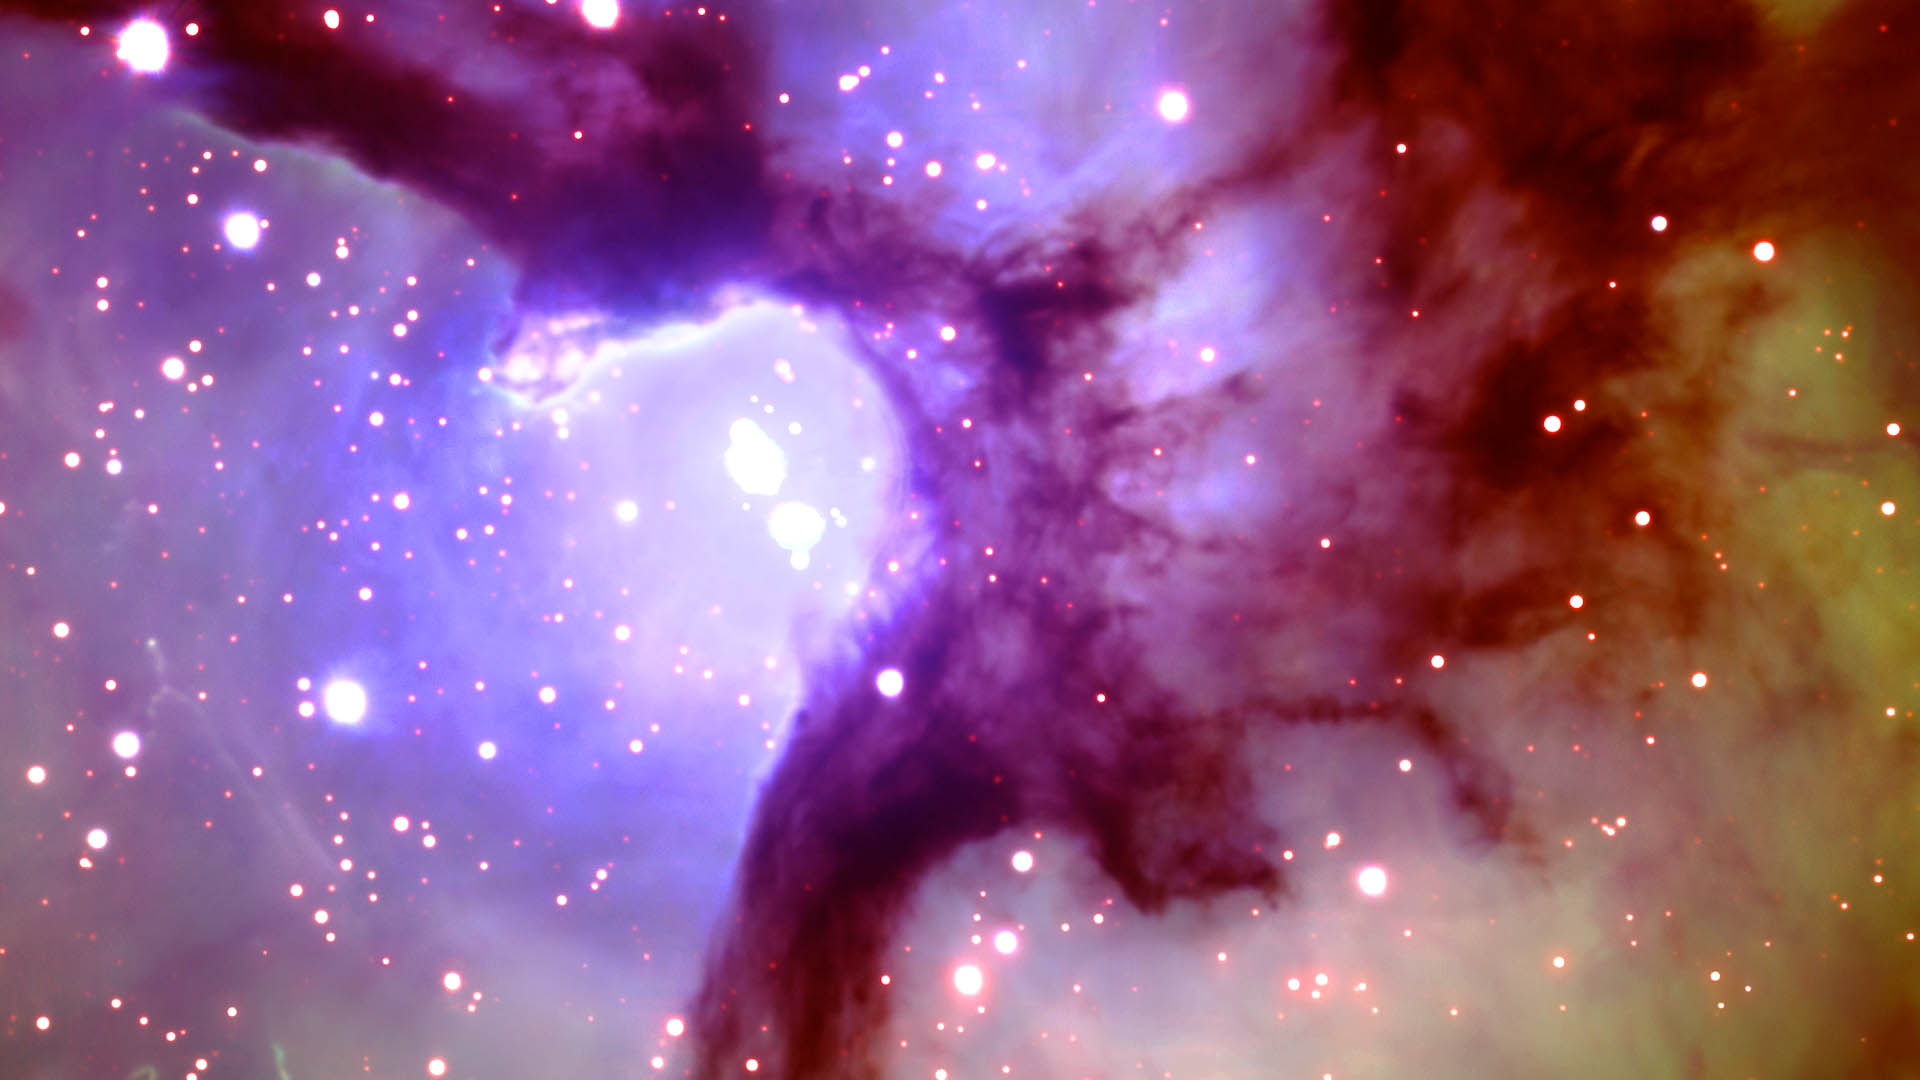 Nebula Hd Wallpaper 1920x1080 - Pics about space